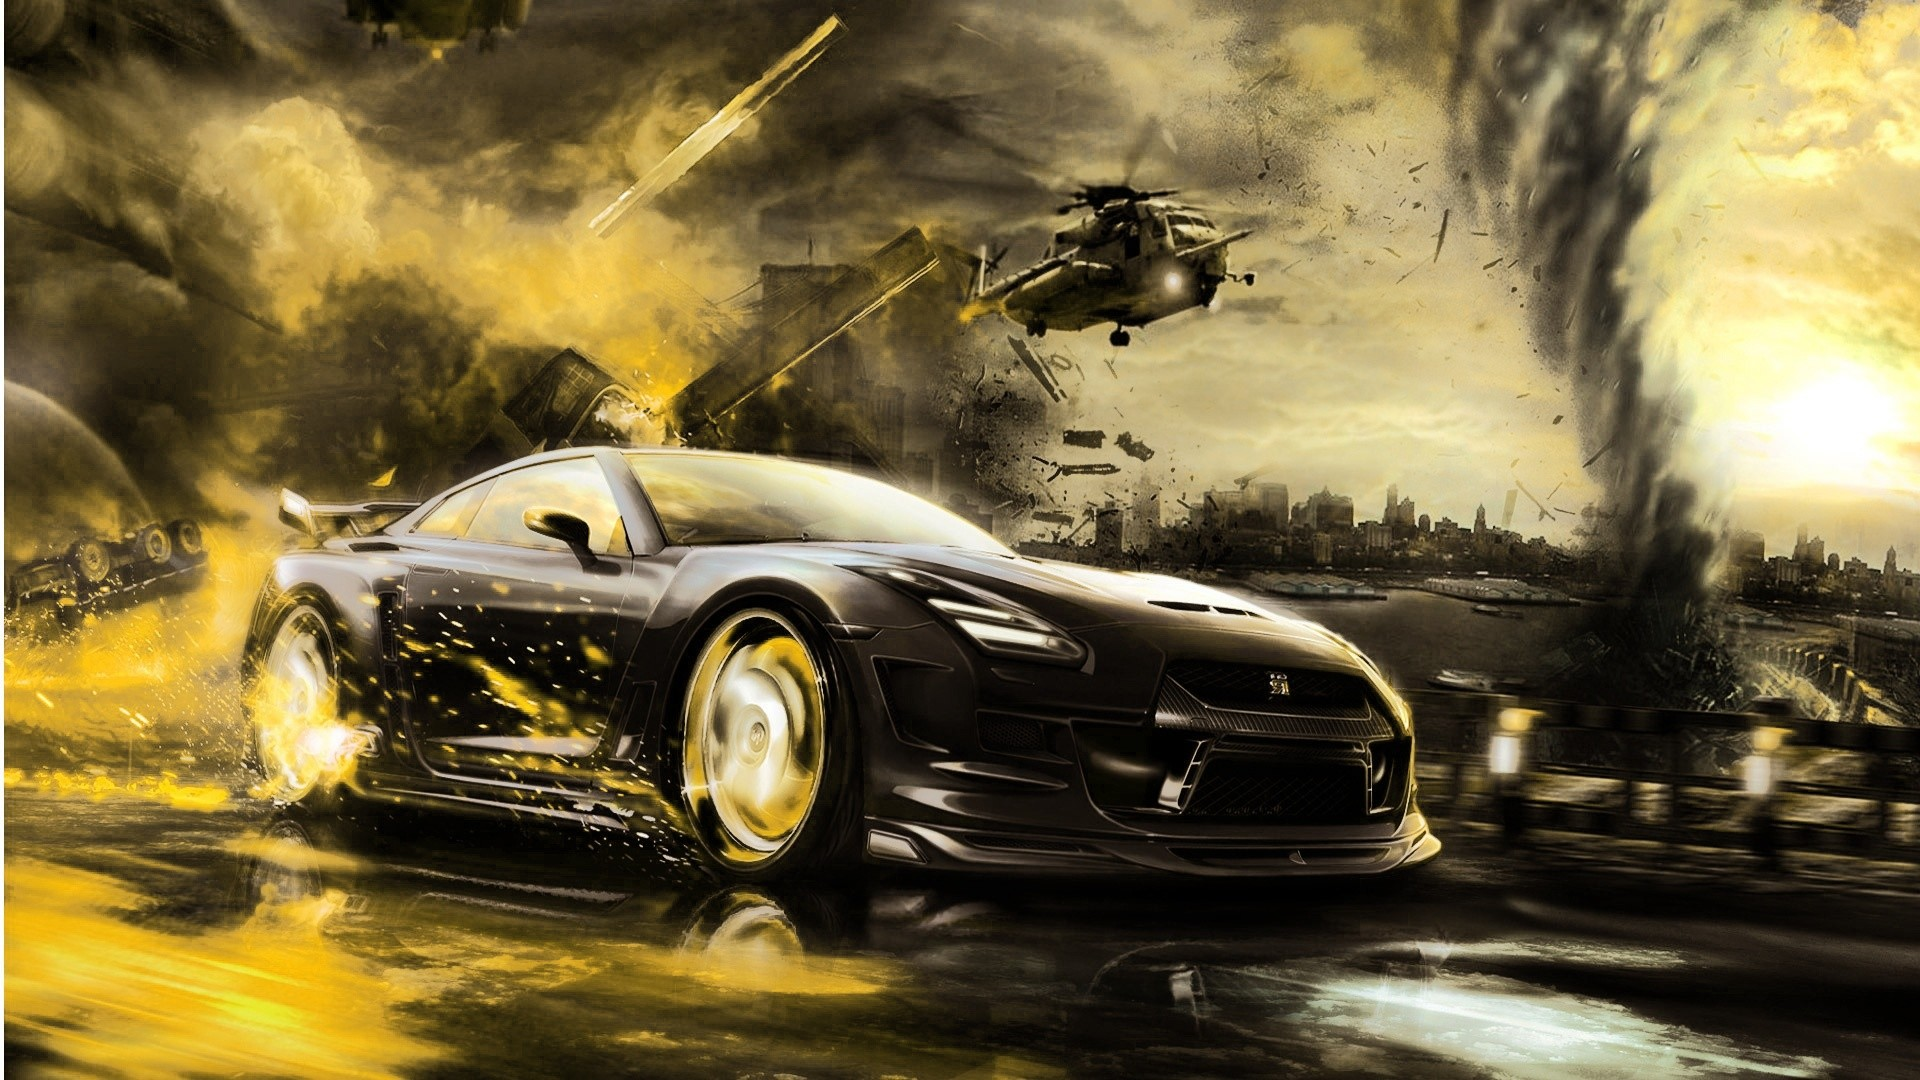 Car hd Wallpapers-1080p Awesome Collection   Unique HD Wallpapers .